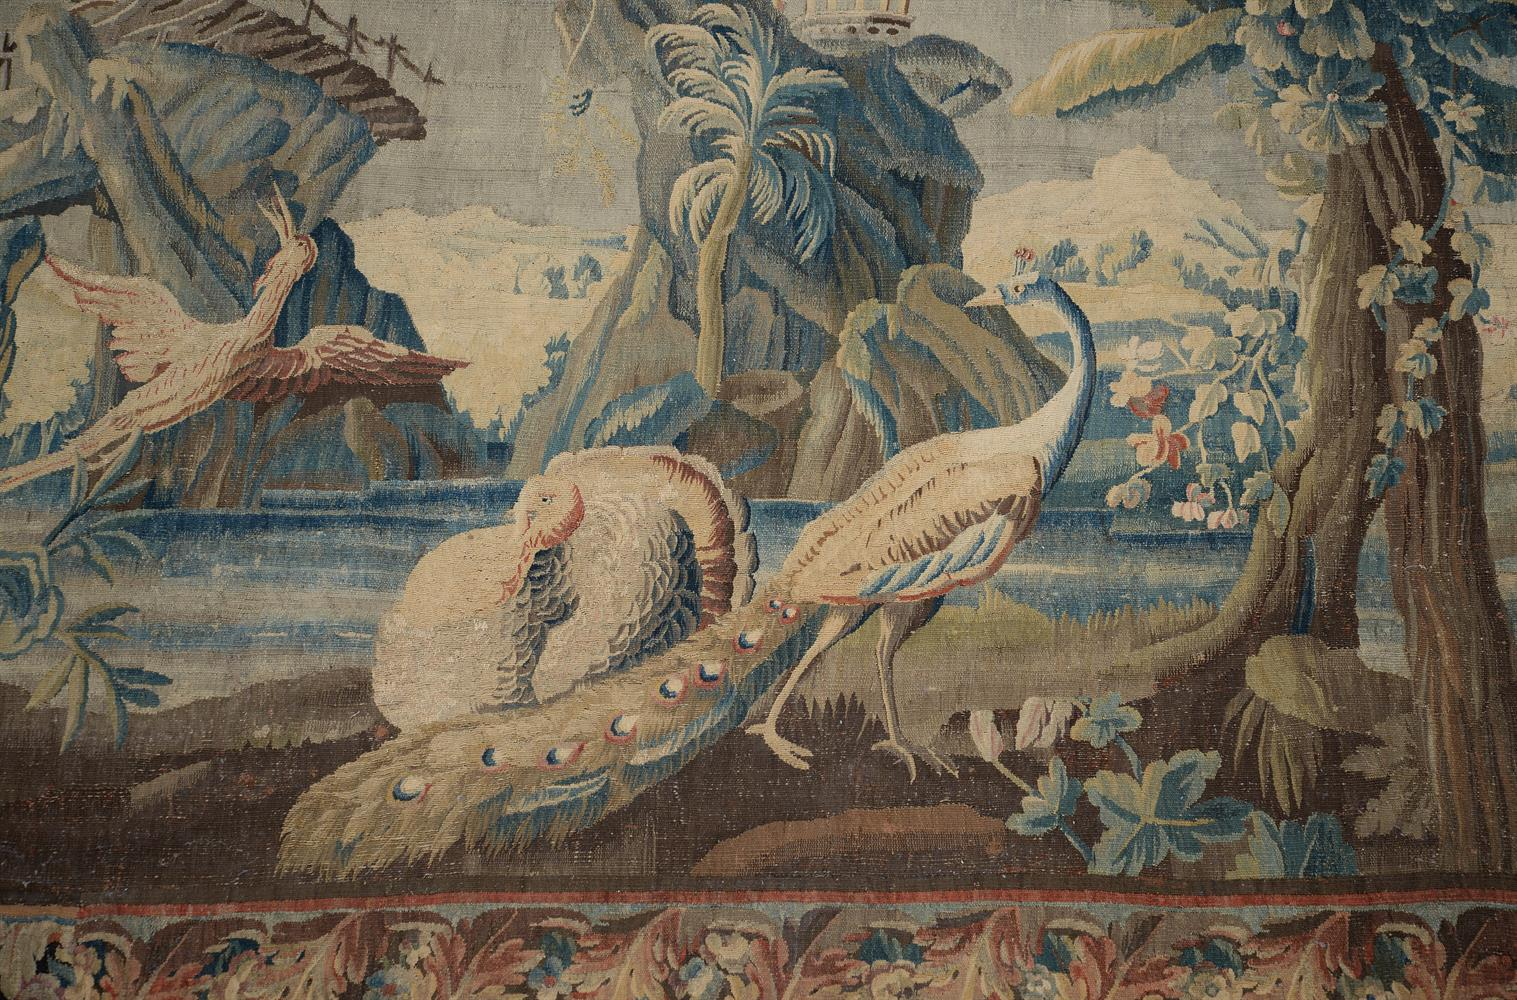 A FRENCH EXOTIC CHINOISERIE LANDSCAPE TAPESTRY, MID-18TH CENTURY - Image 4 of 6